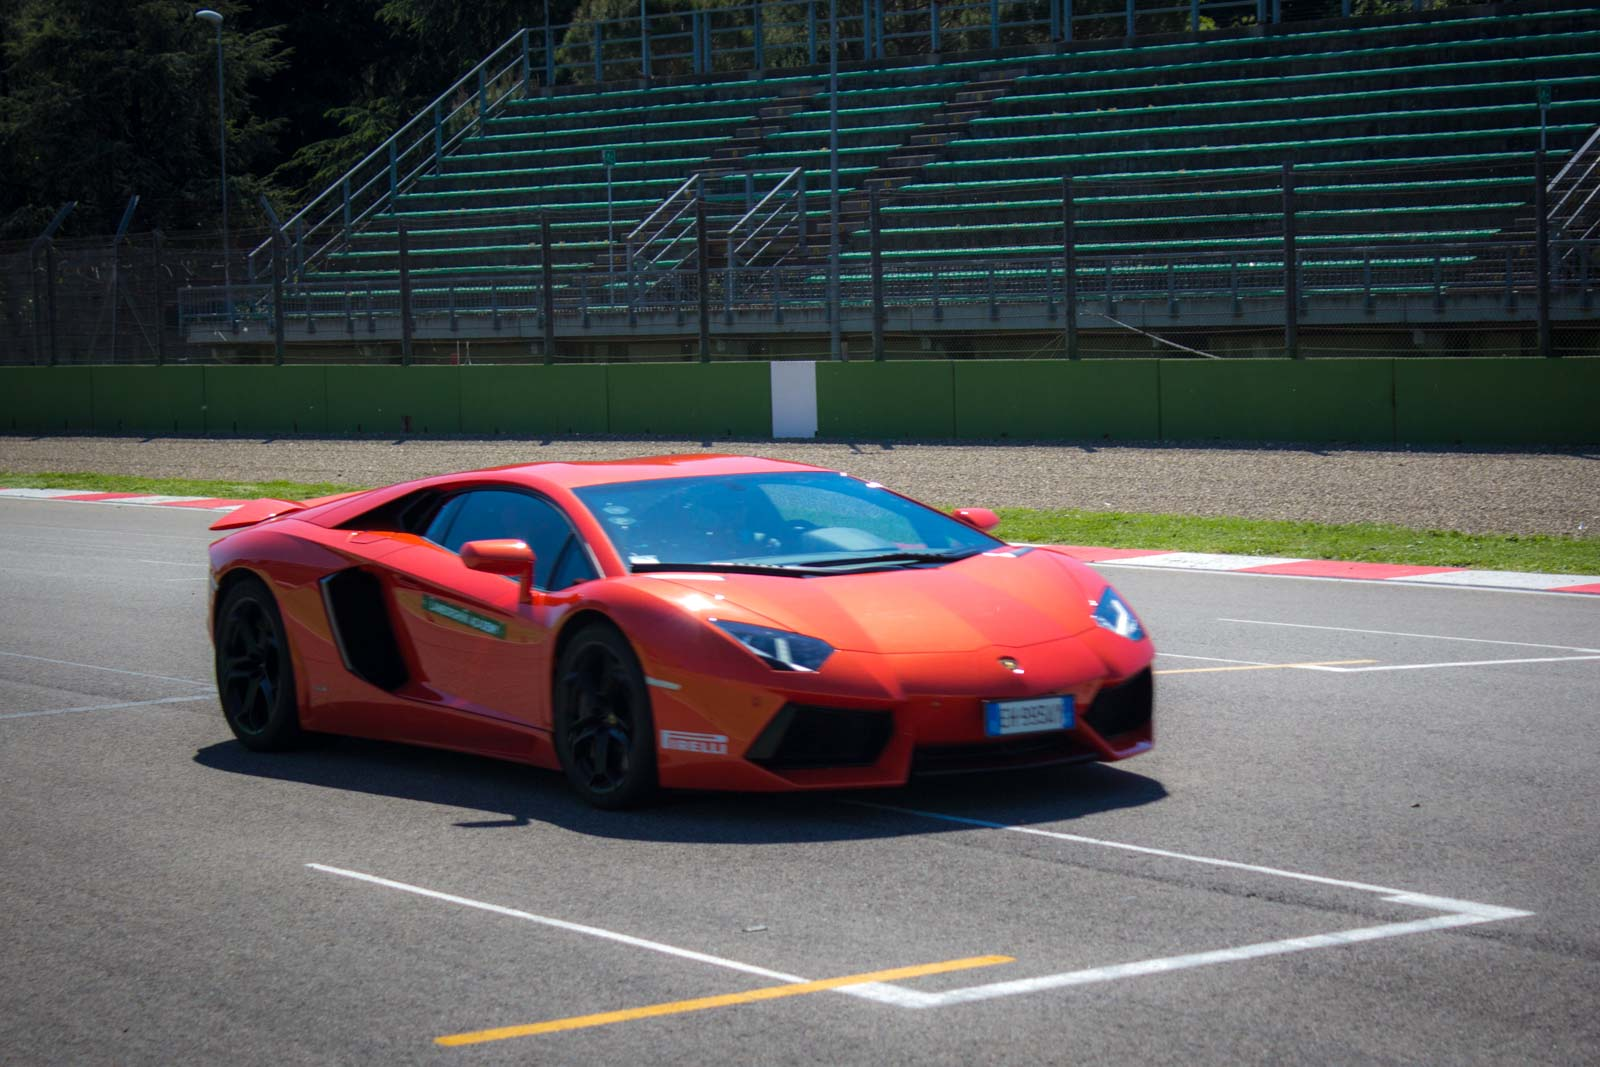 lamborghini driving tips, max venturi, imola racetrack, how to drive fast and safe, braking, corners